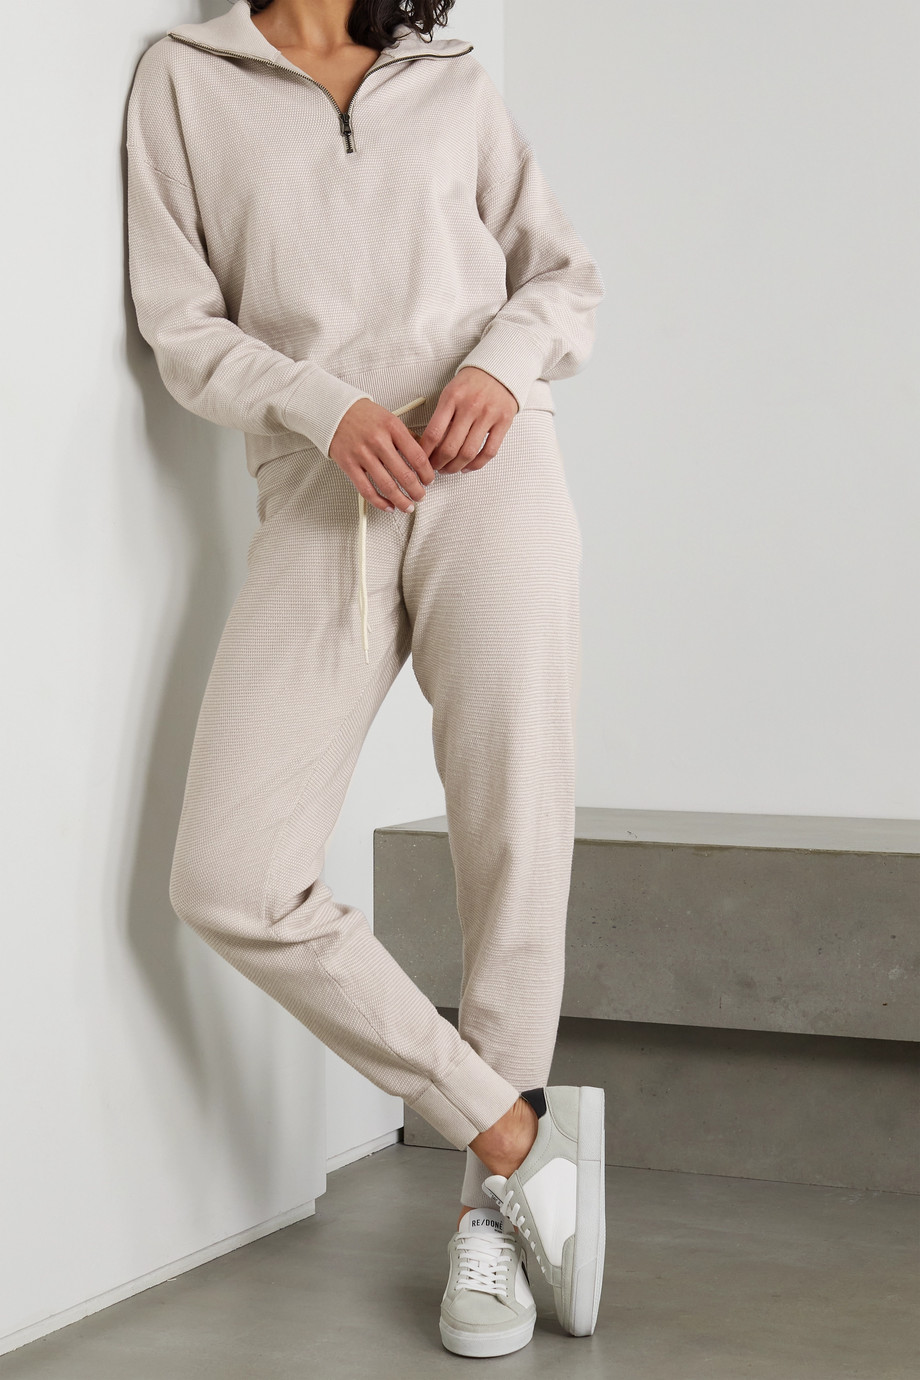 VARLEY Alice 2.0 cotton track pants